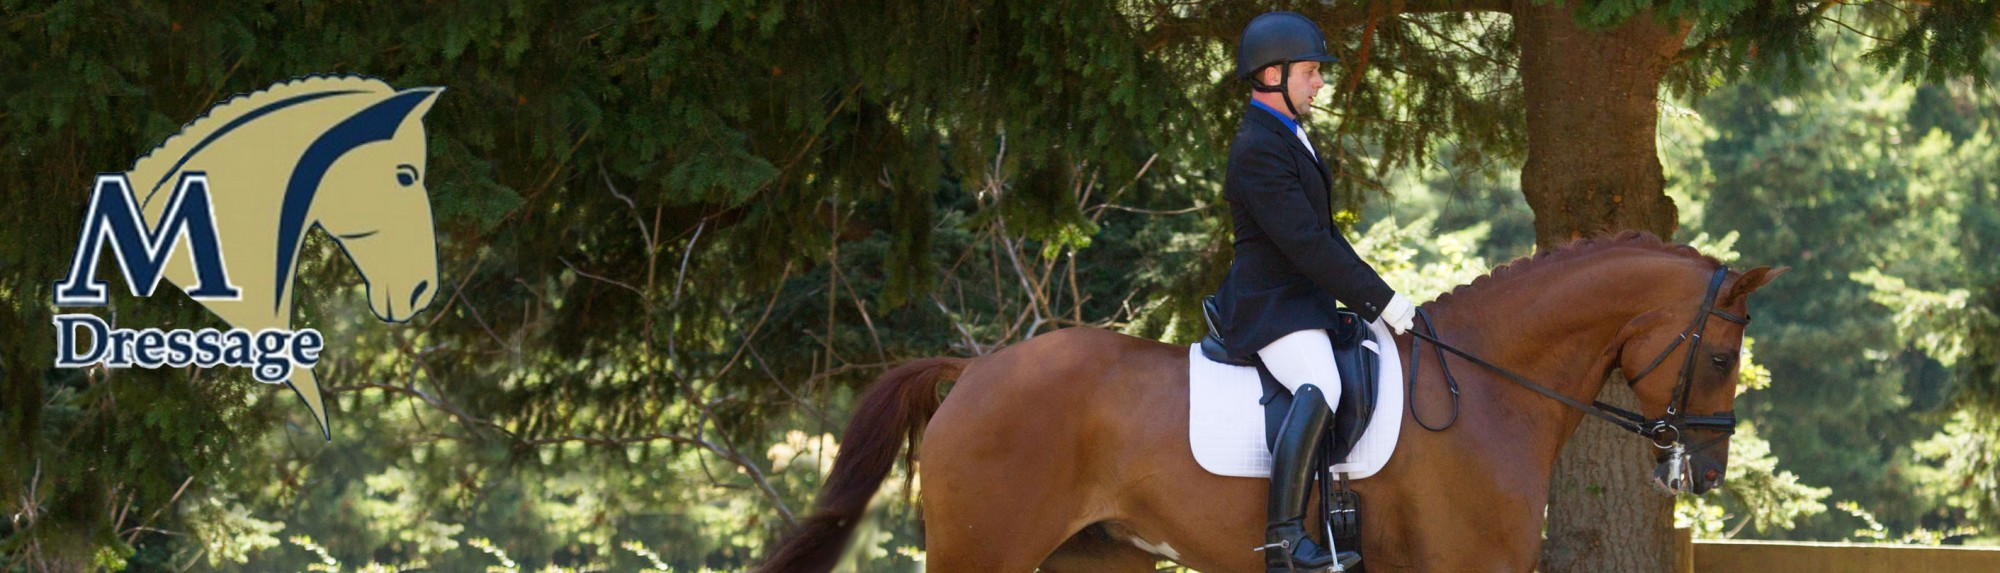 M Dressage | Seattle Dressage Training and Lessons